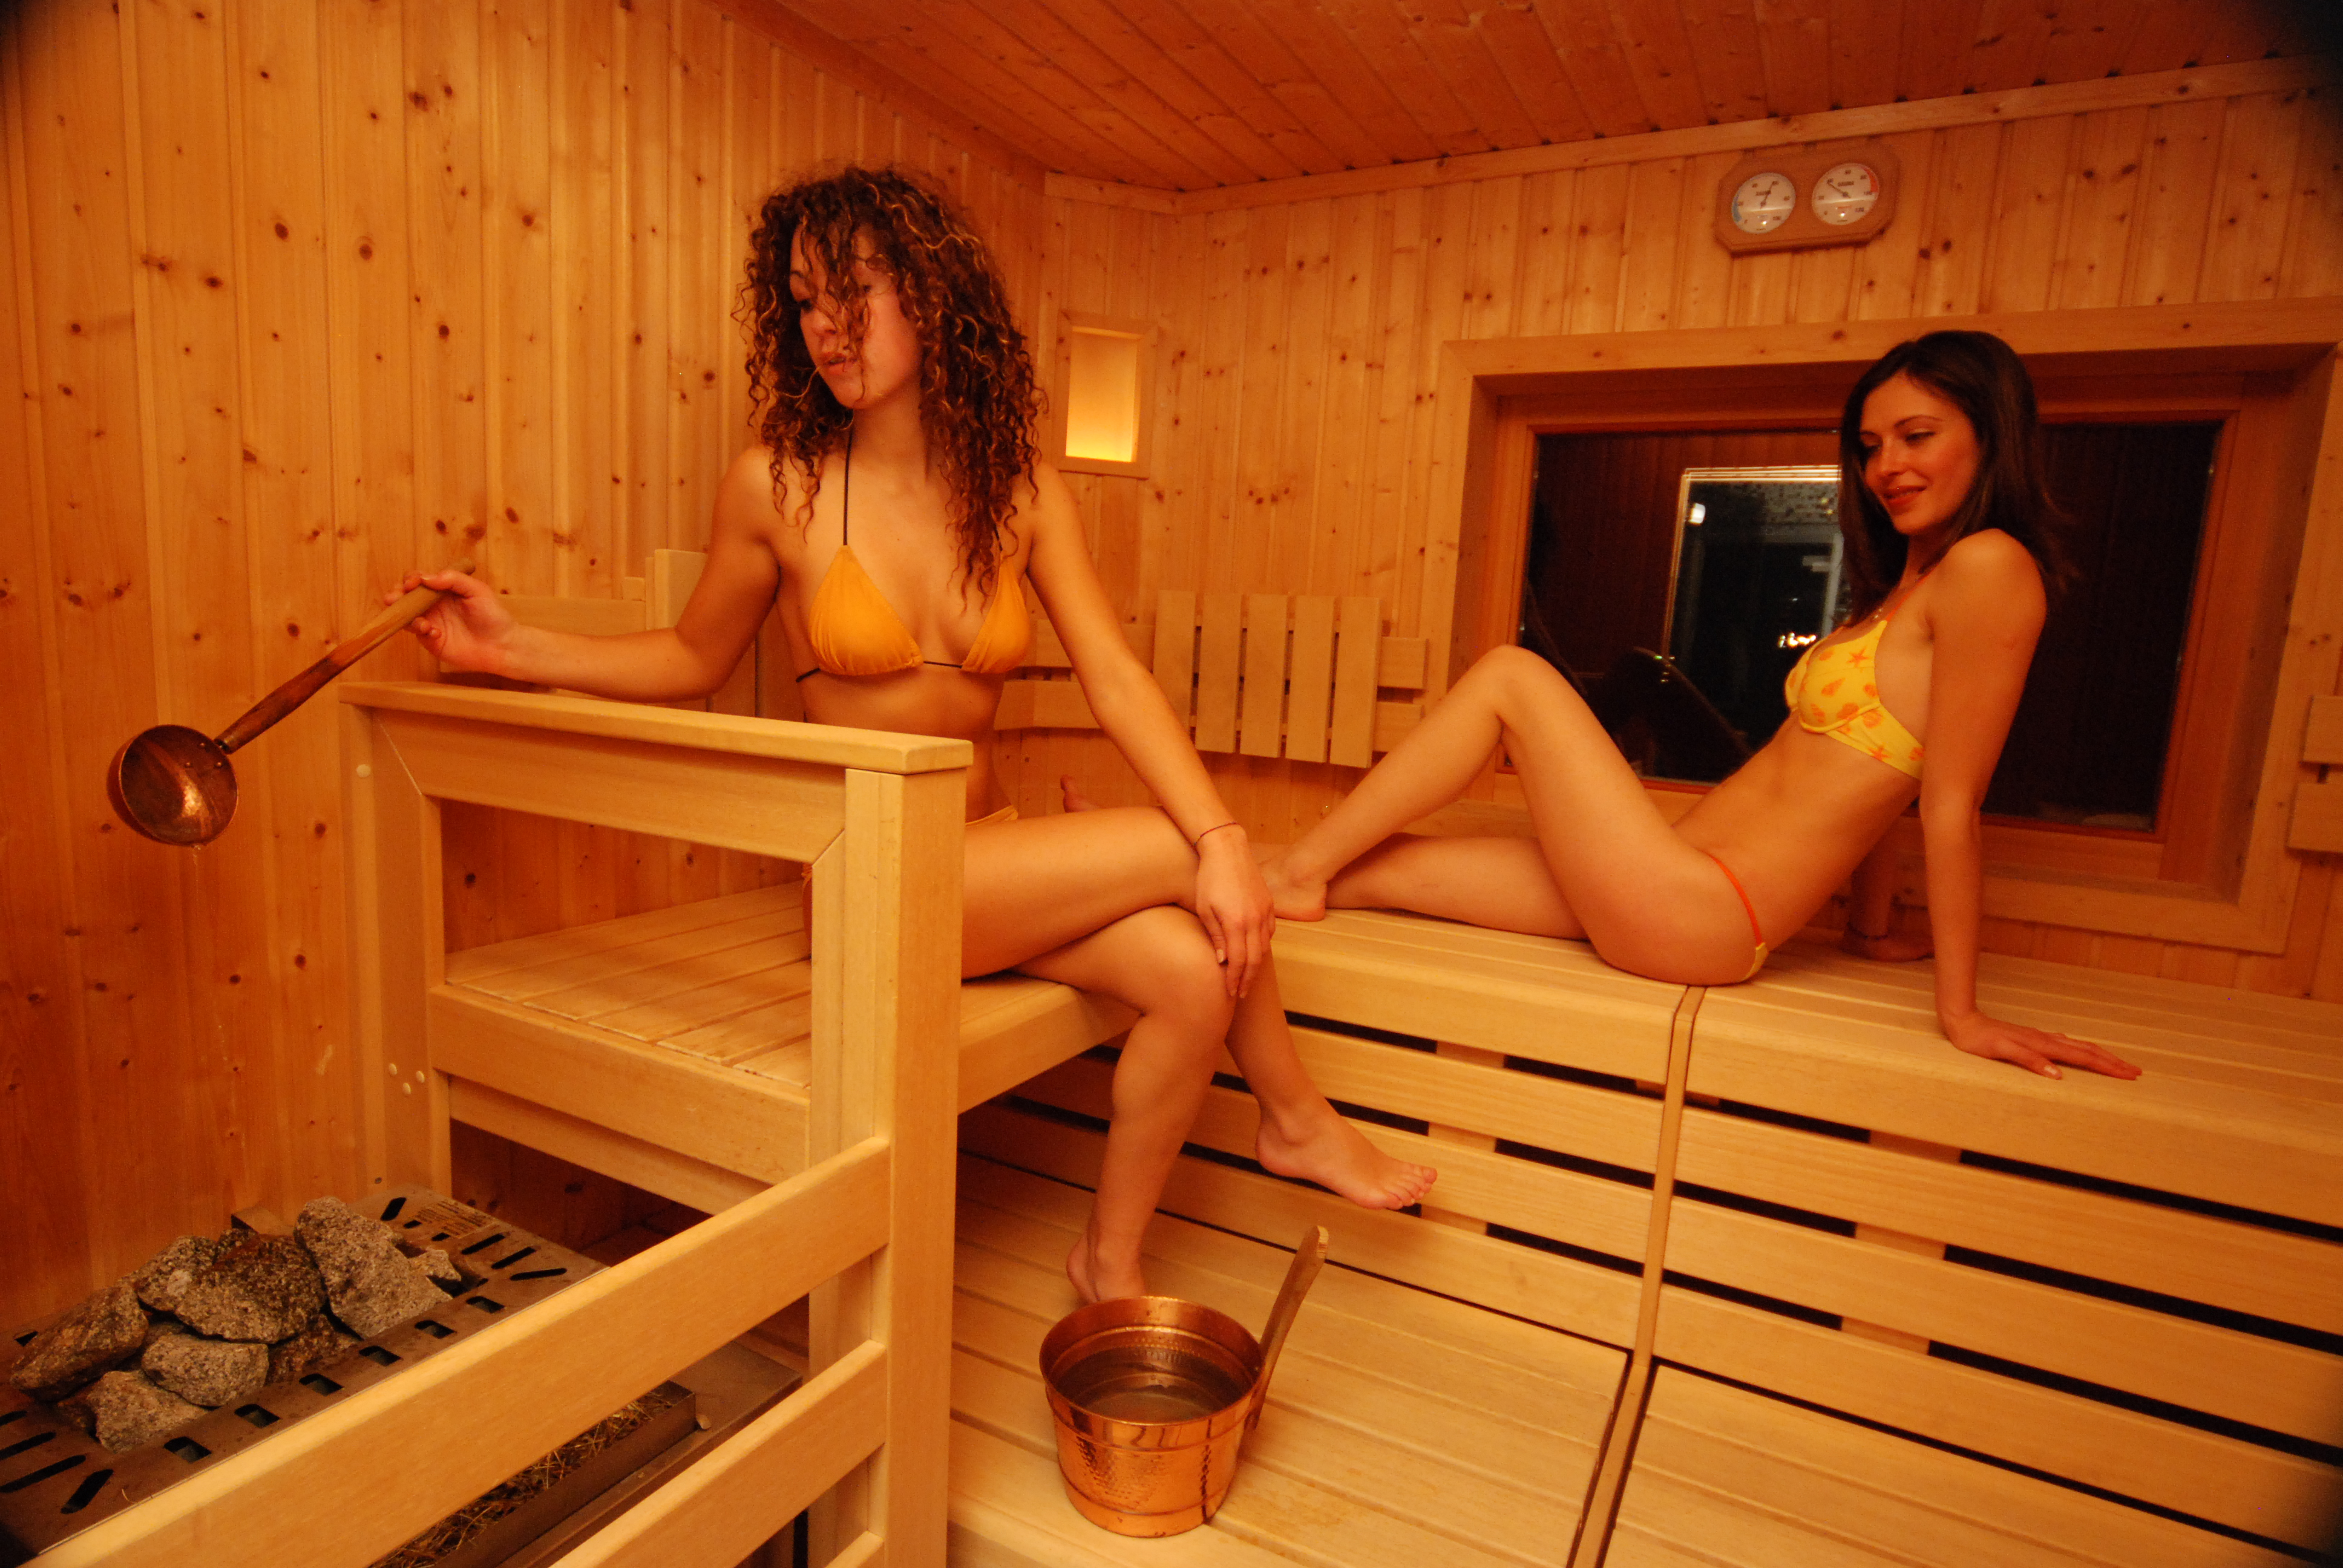 porno-skazki-sauna-video-konchil-v-rot-pyanoy-zhene-video-na-kameru